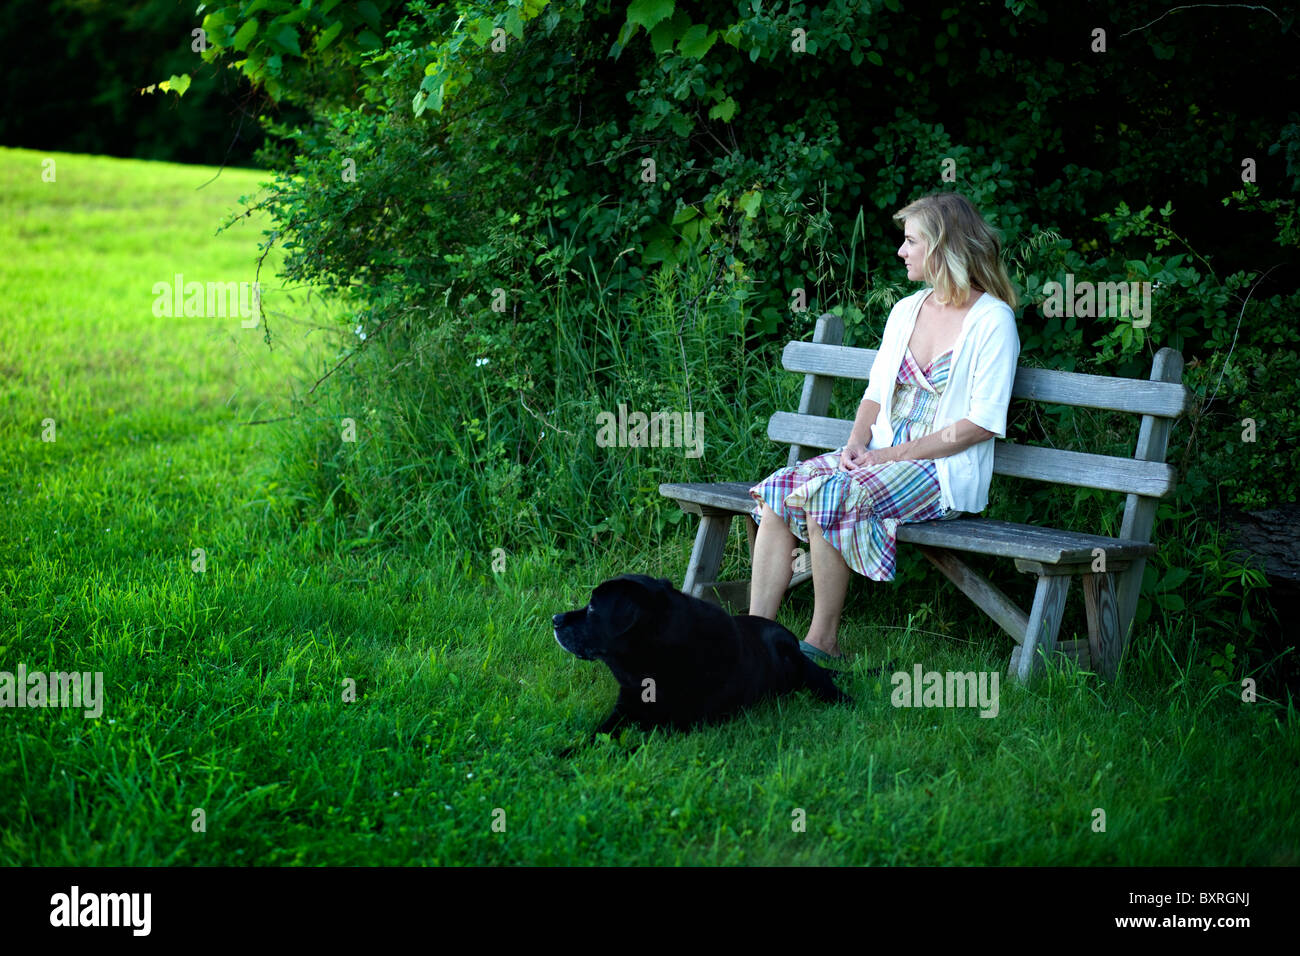 Woman sitting on bench with black Labrador dog beside - Stock Image